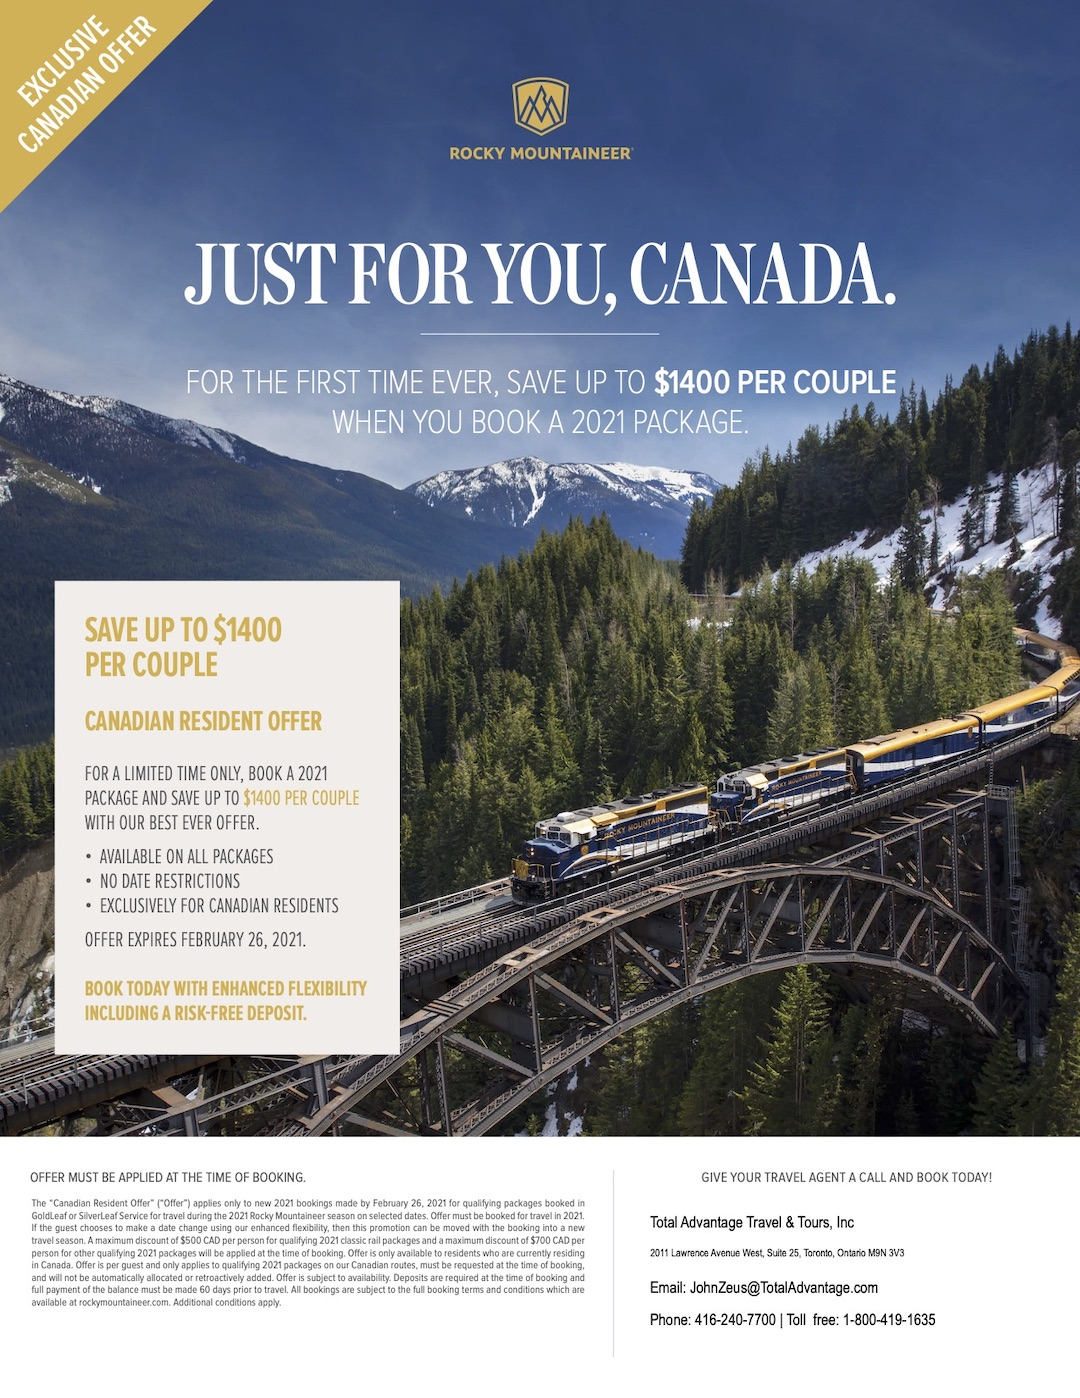 Just for you Canada - Rocky Mountaineer Canadian Resident Offer